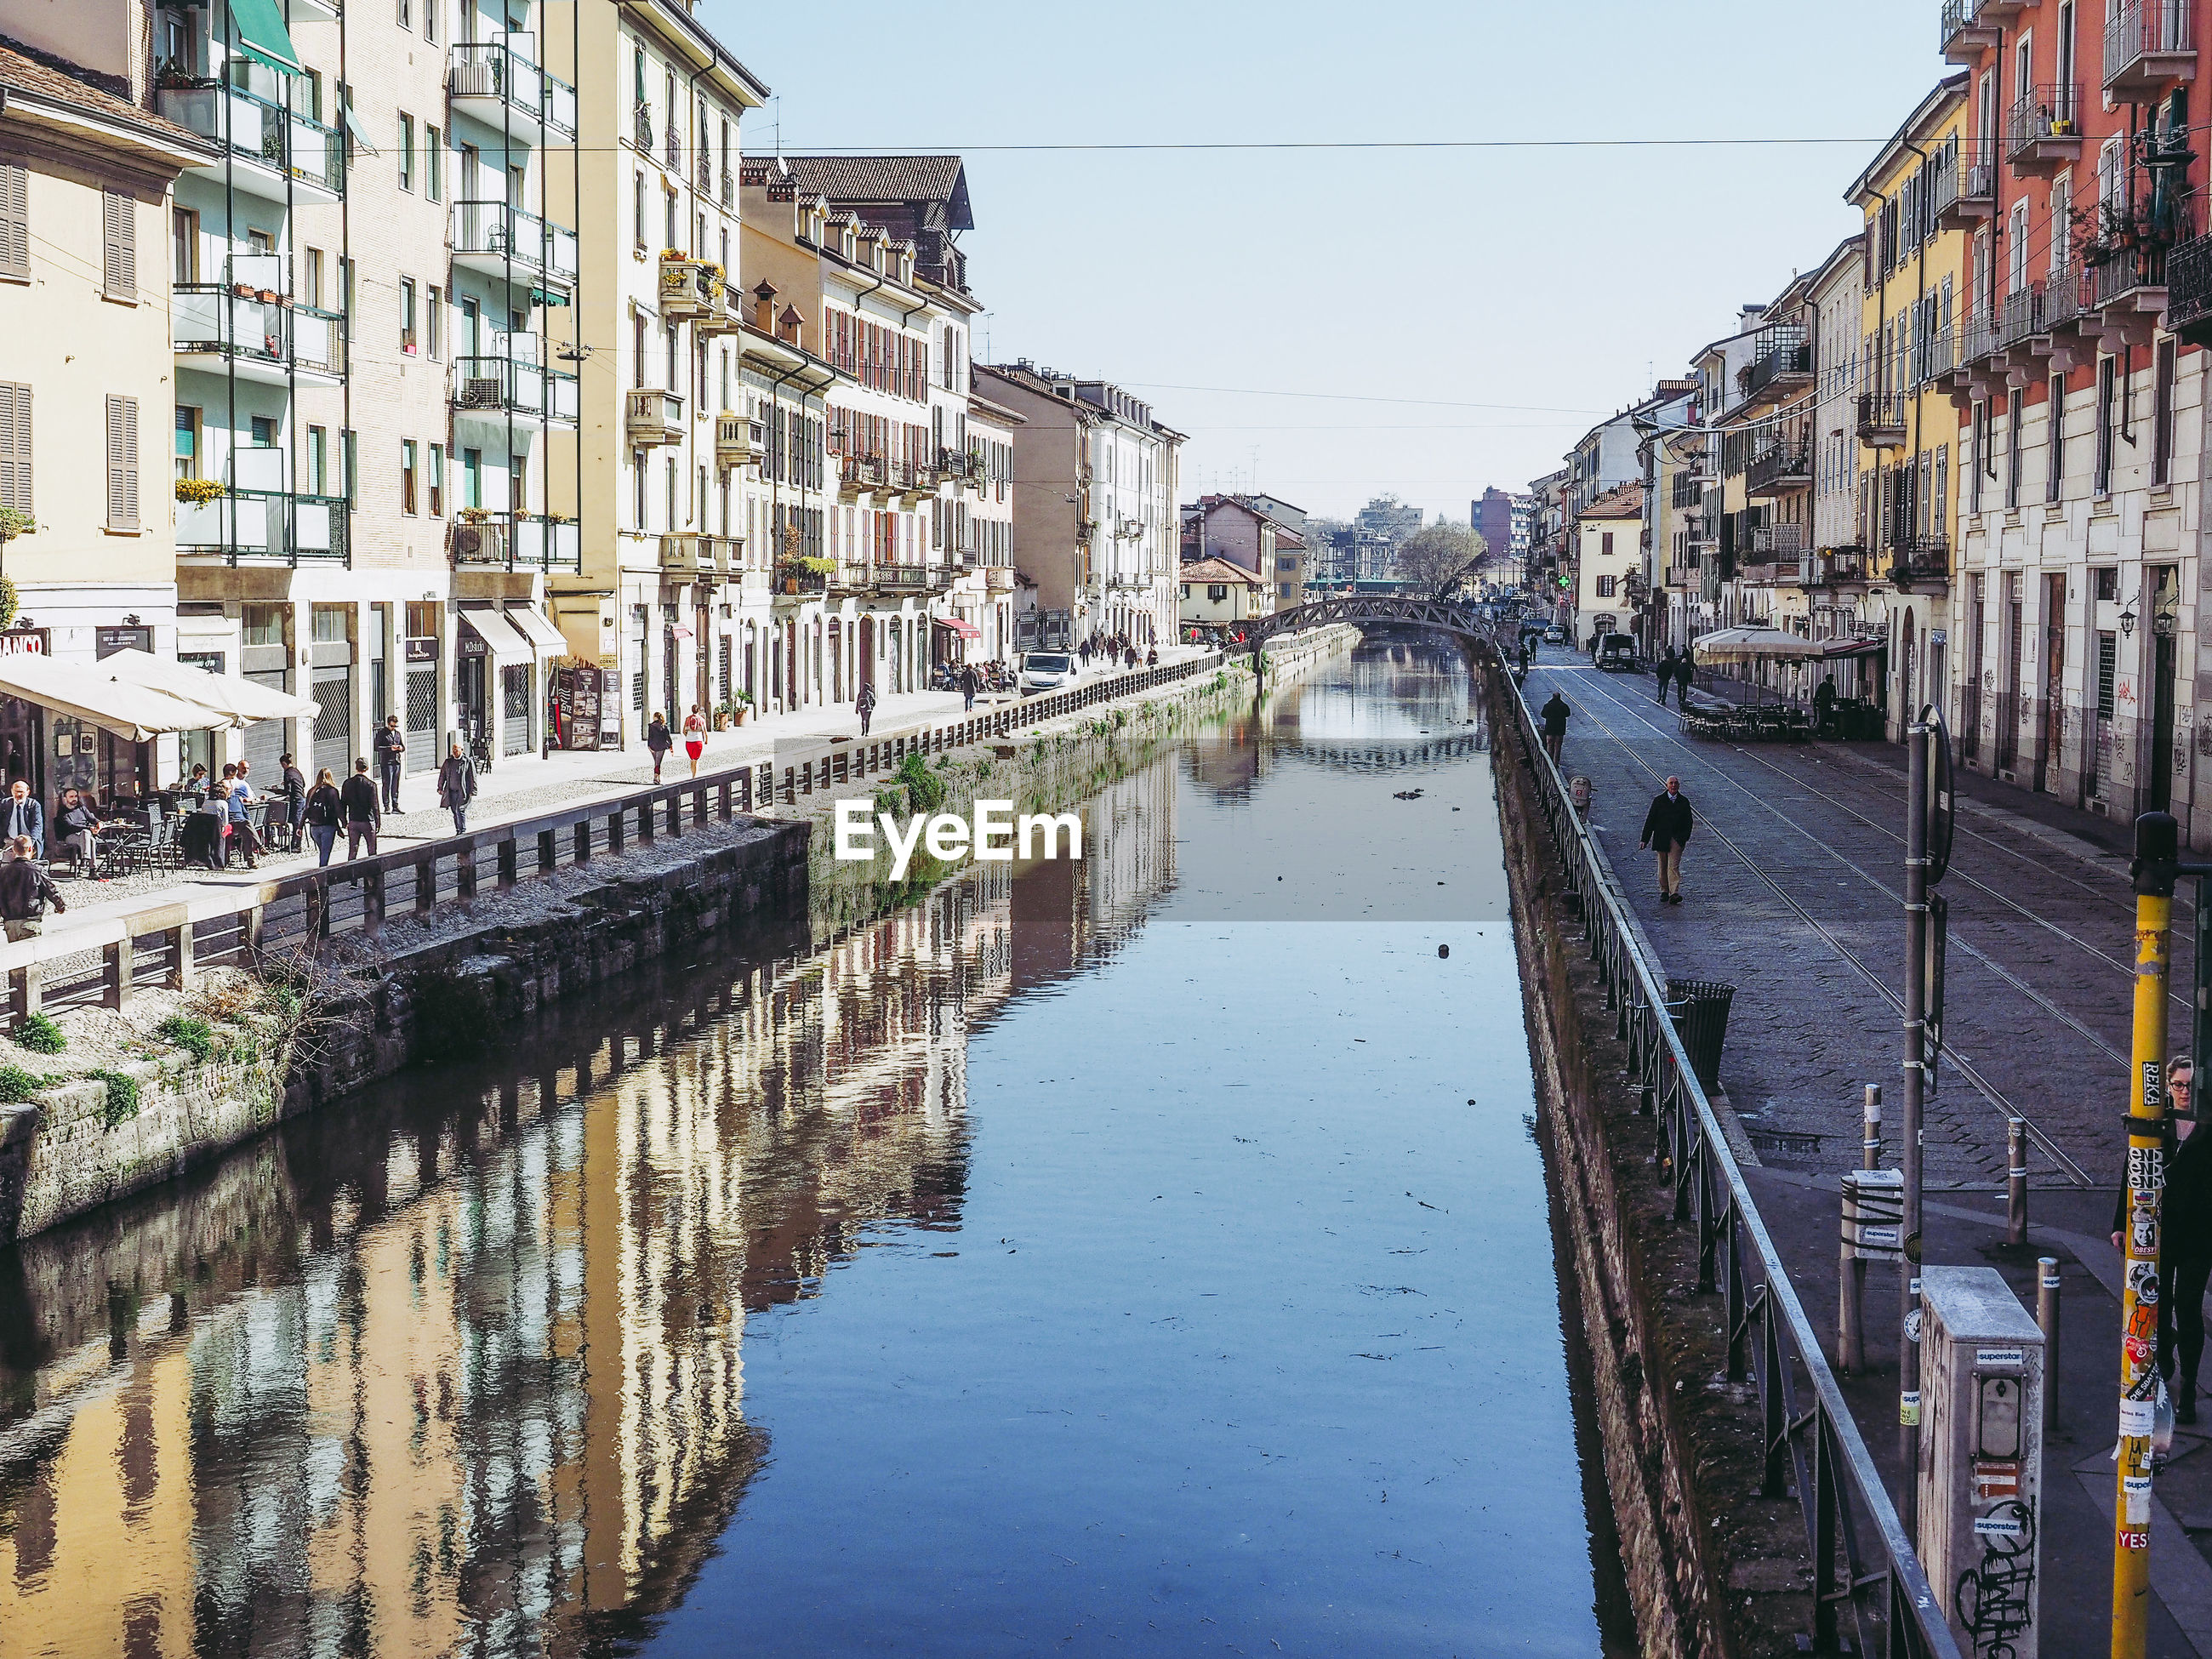 PANORAMIC VIEW OF CANAL AMIDST BUILDINGS IN CITY